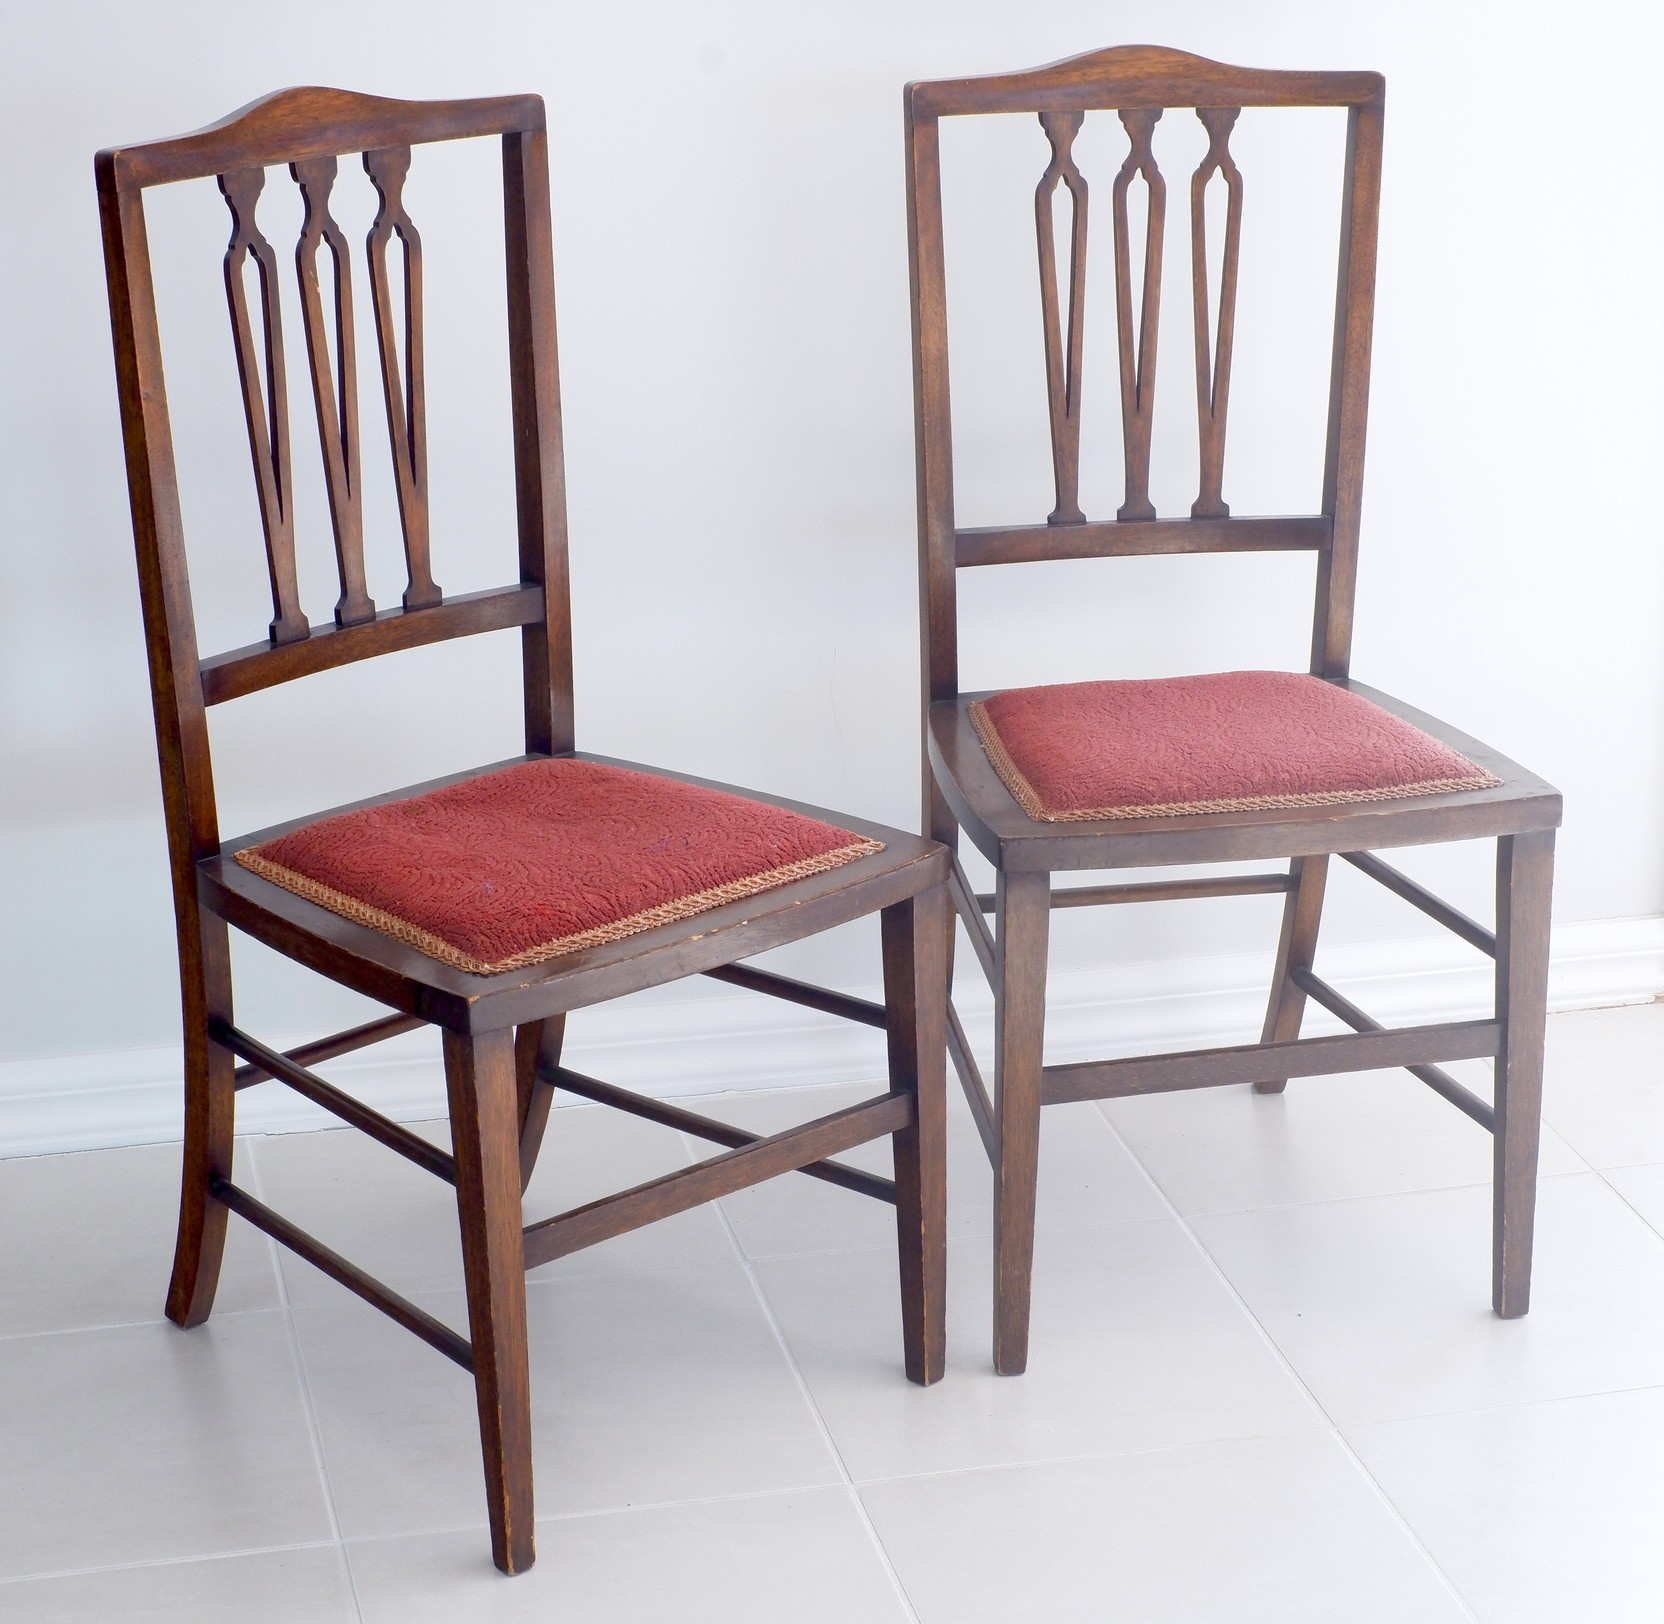 'Pair of Edwardian Maple Side Chairs Early 20th Century'